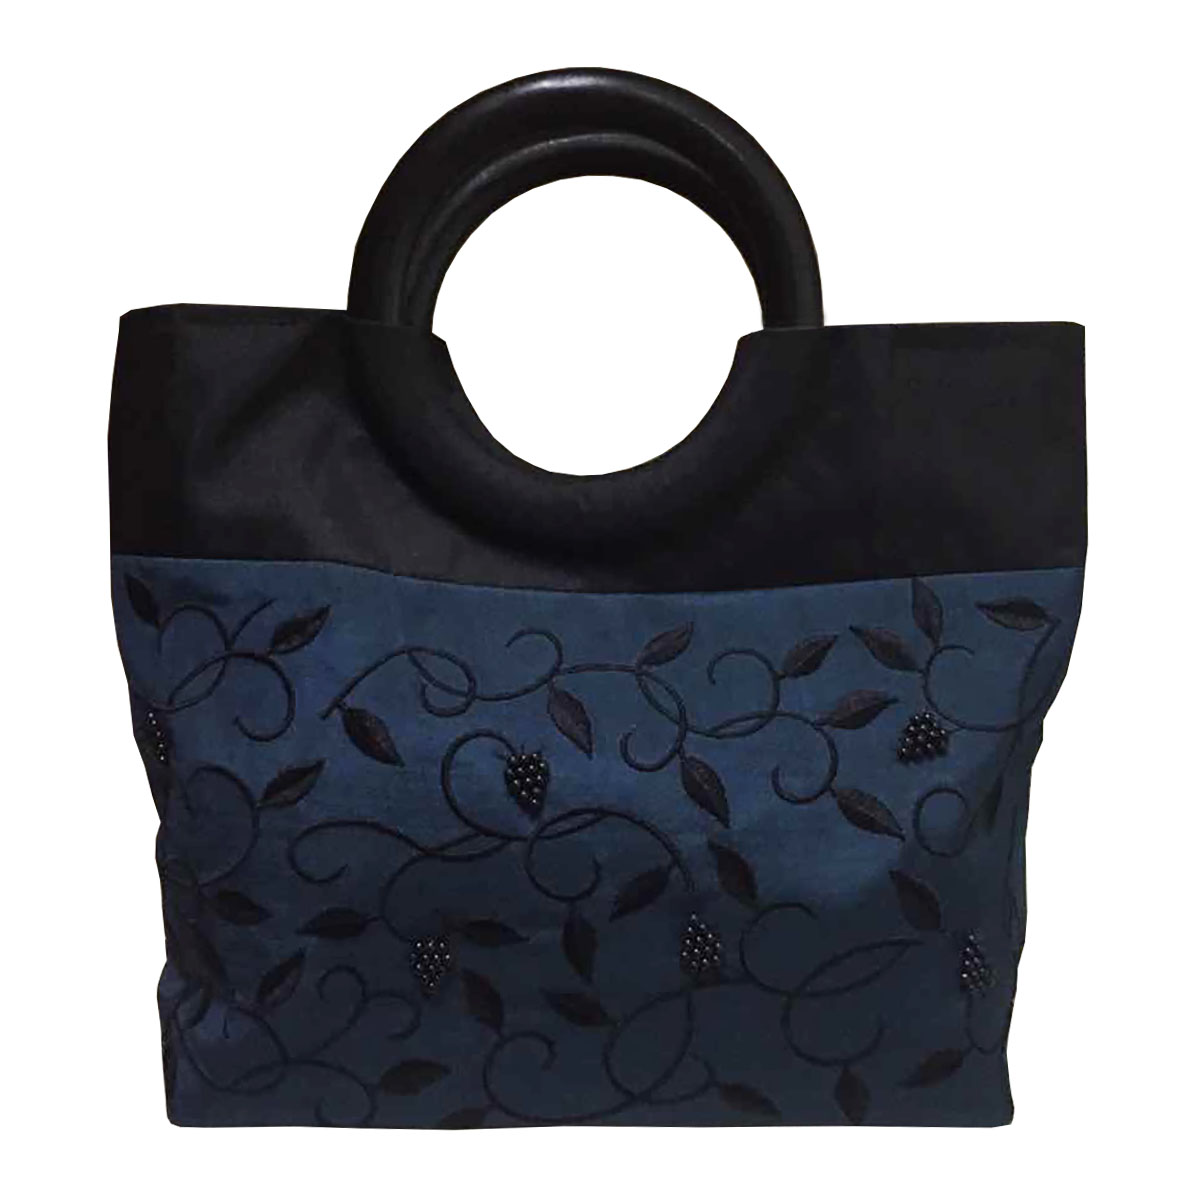 Thai silk tote fashion bag & wooden handle